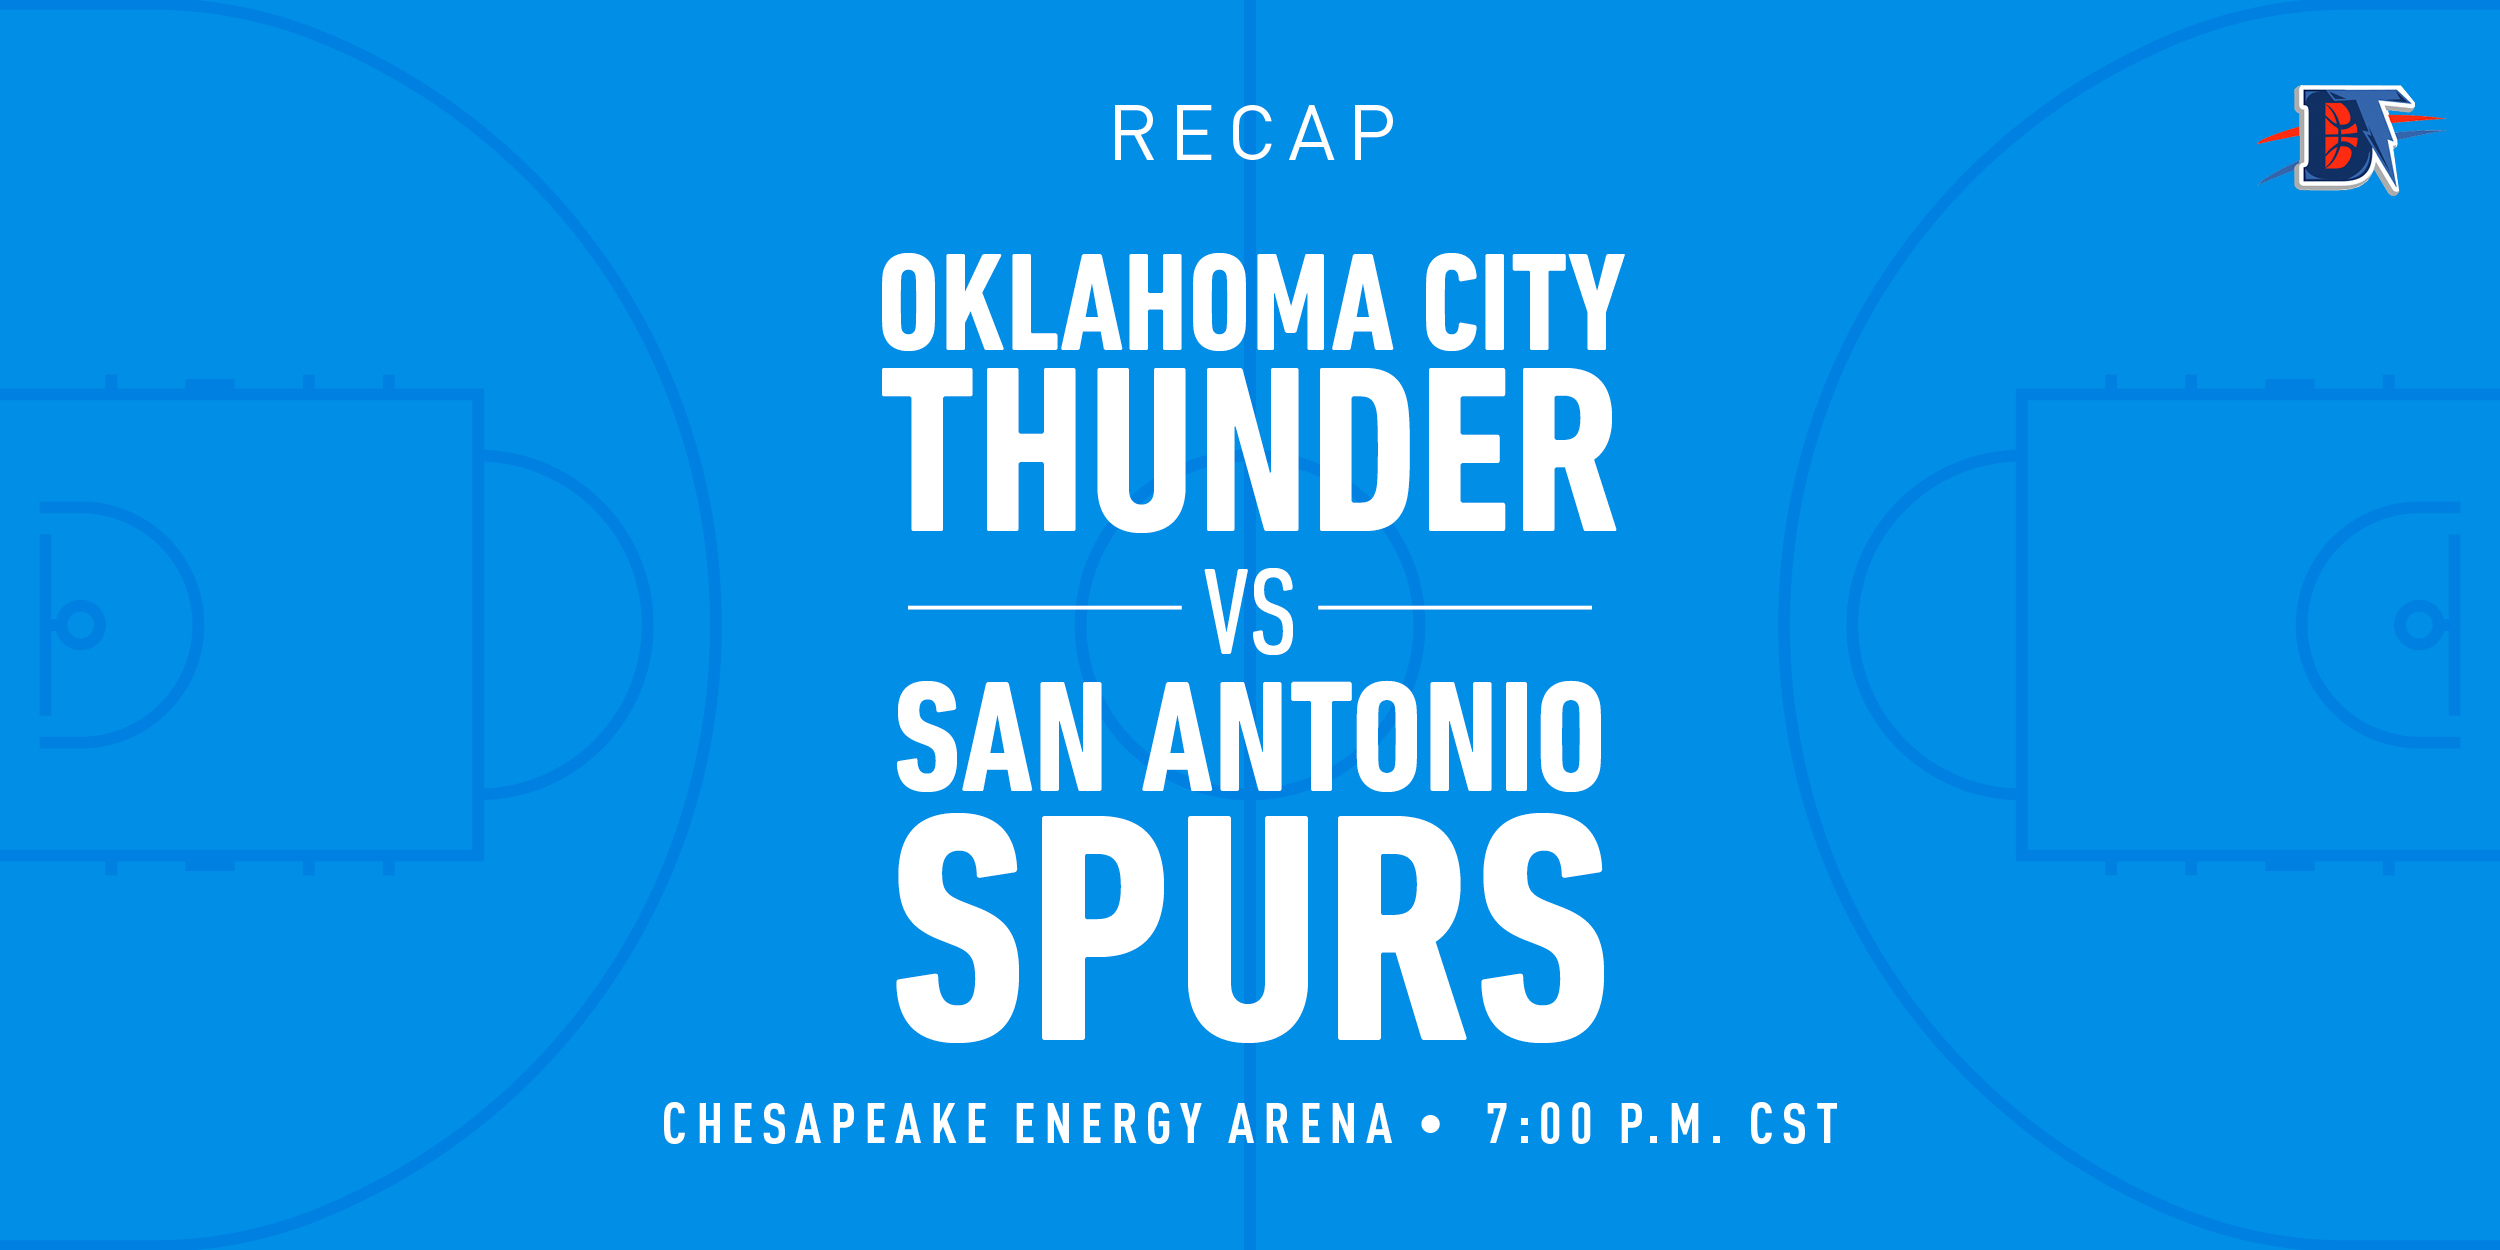 Game 54 Recap: Spurs (23-31) def. Thunder (32-22) 114-106